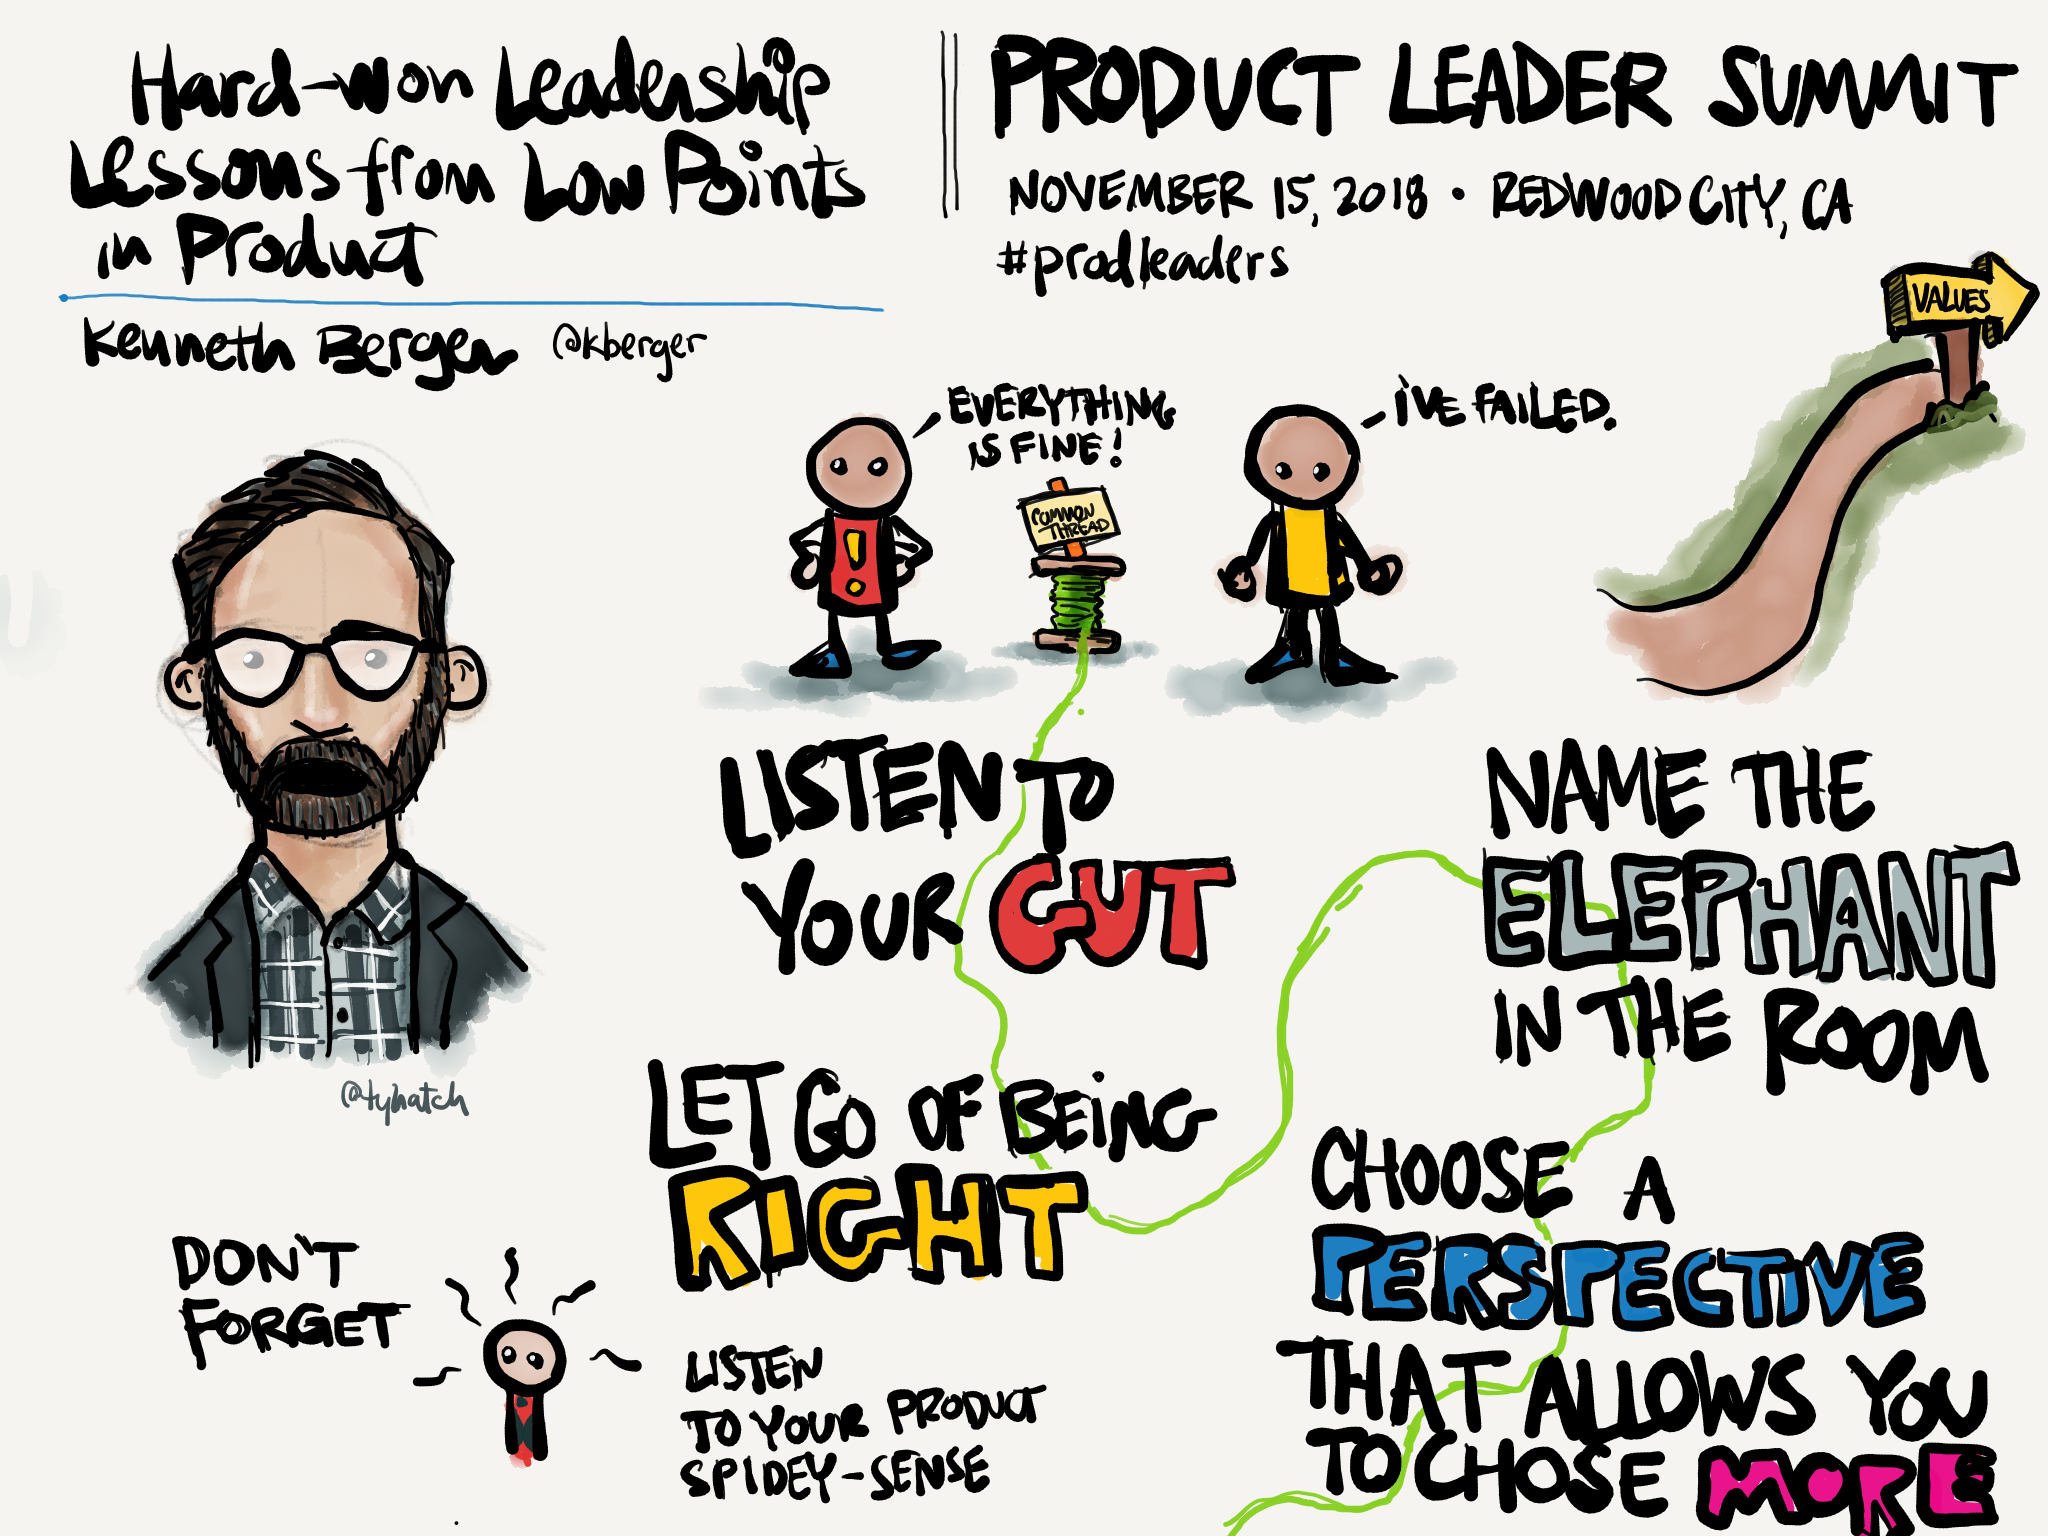 Kenneth Berger workshop: Hard-won Leadership Lessons from Low Points in Product